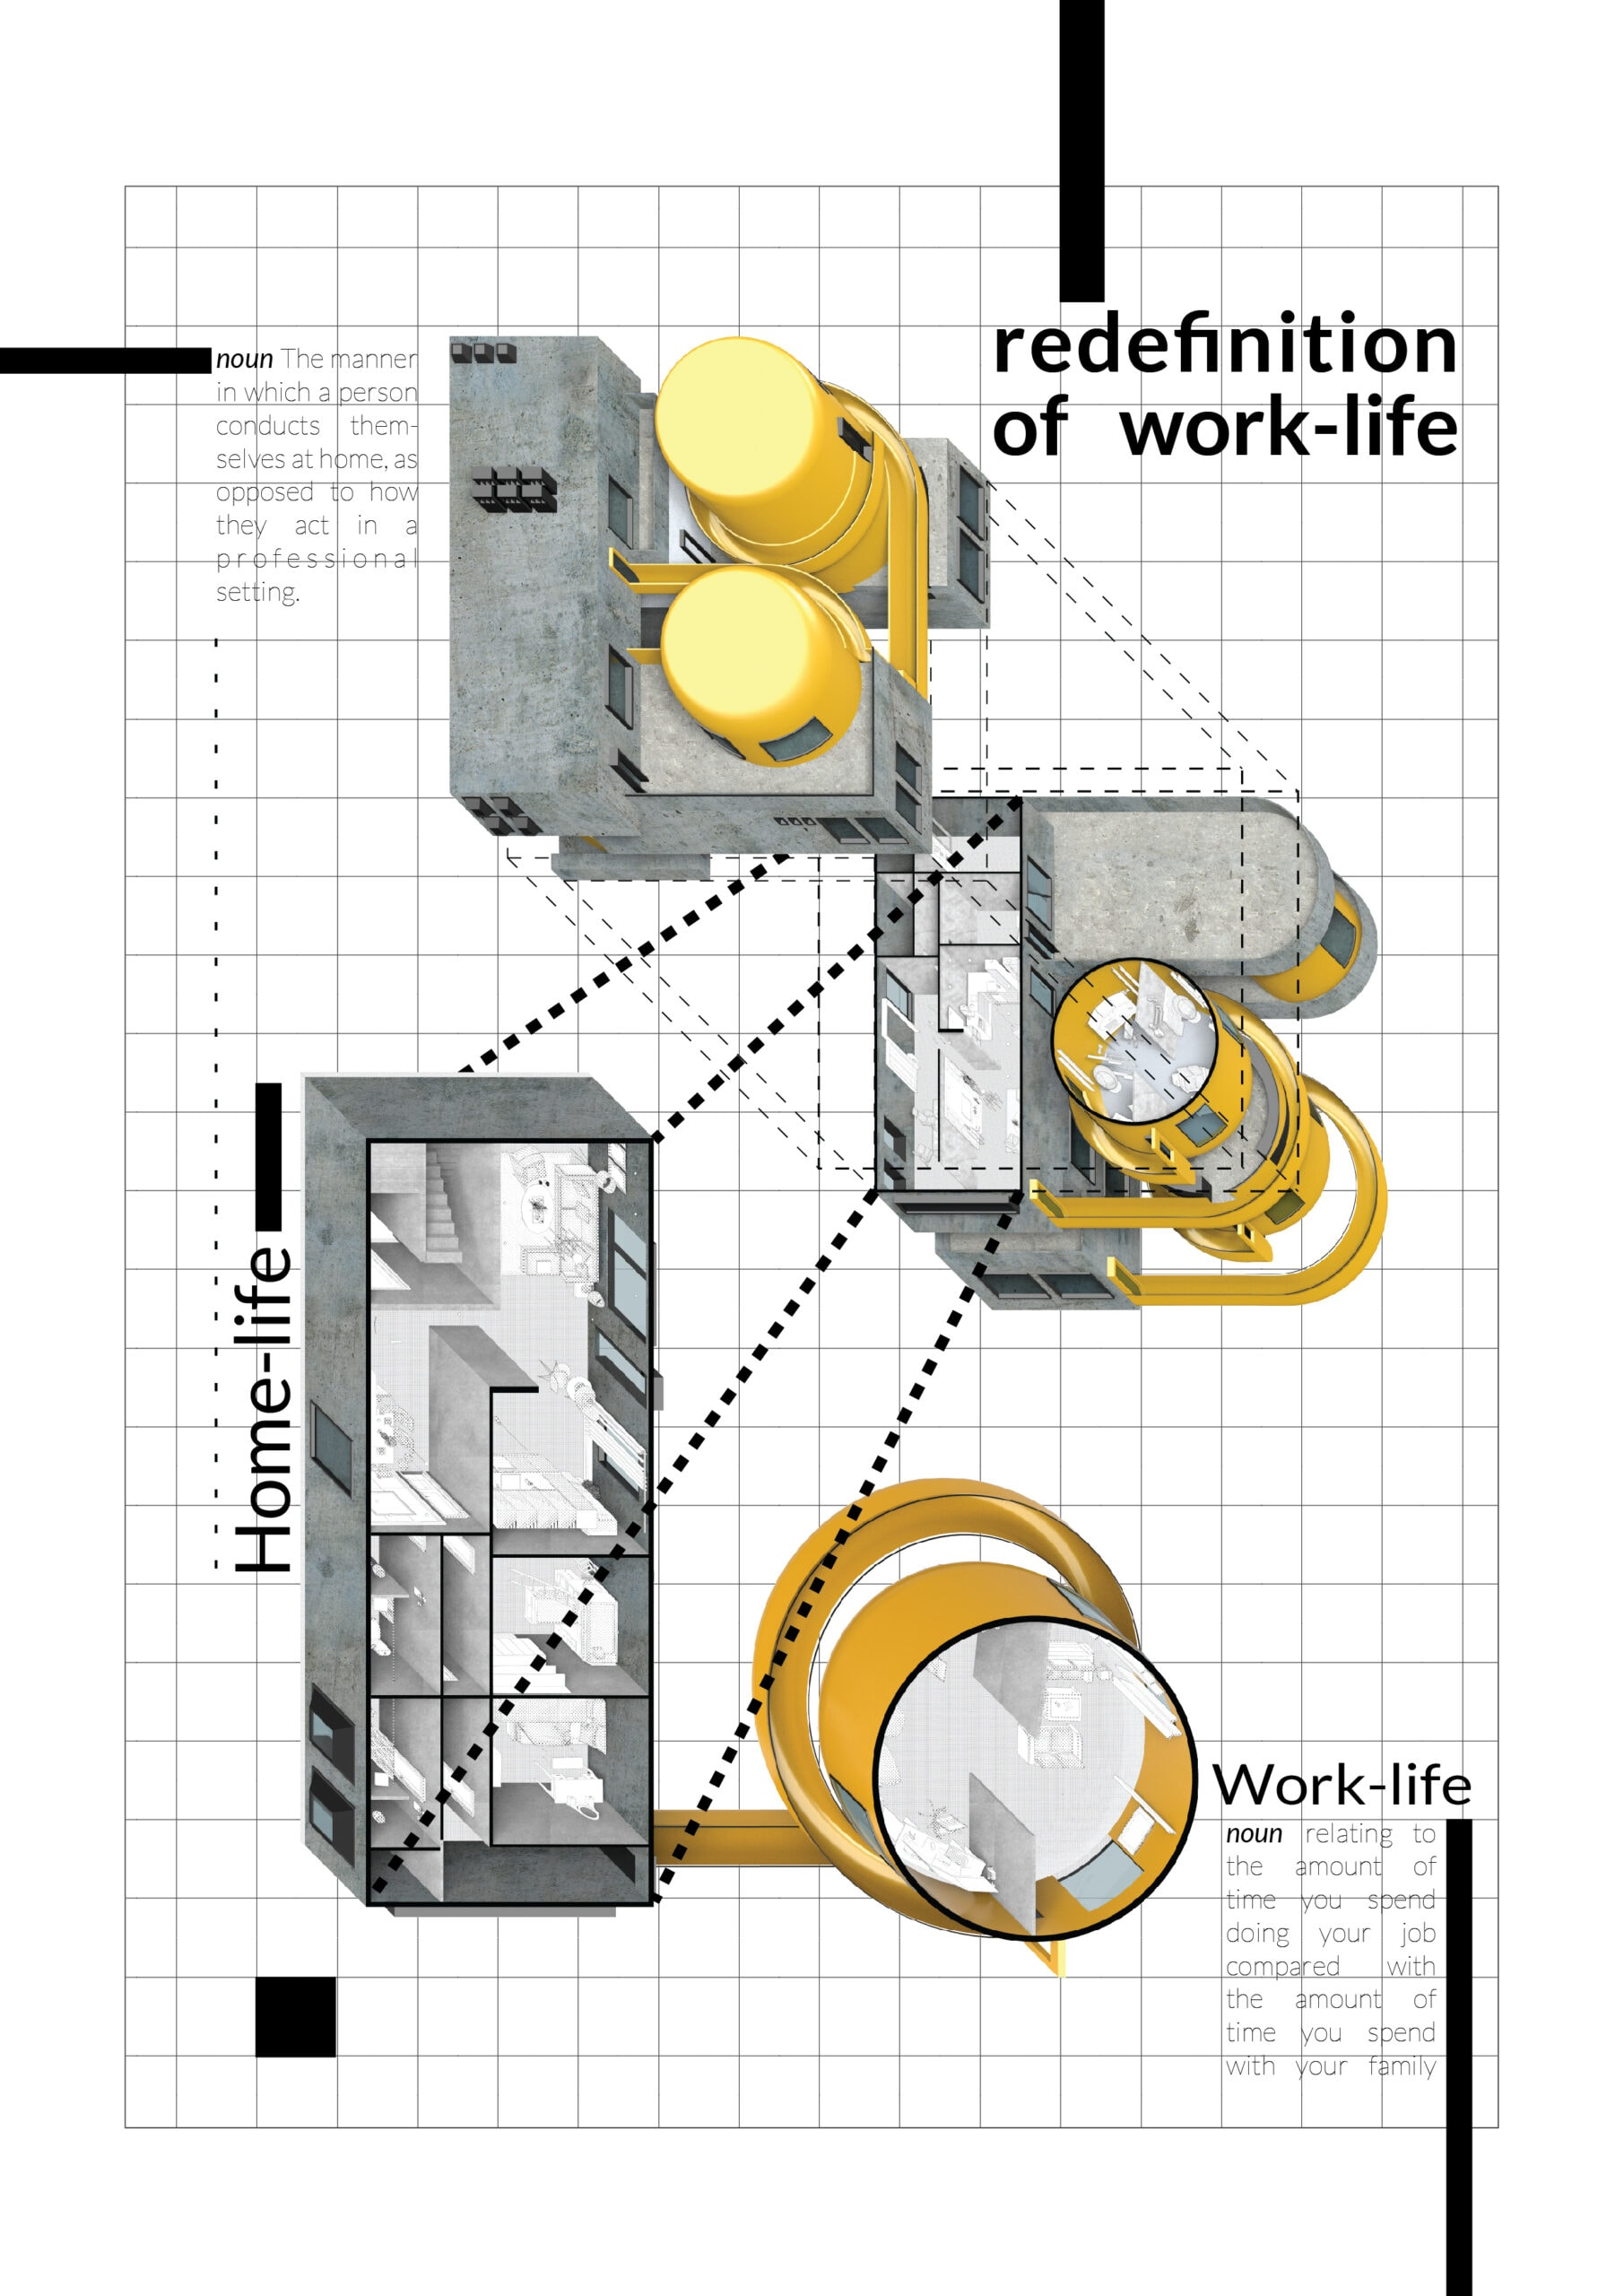 18012_Redefinition of work-life_Unit